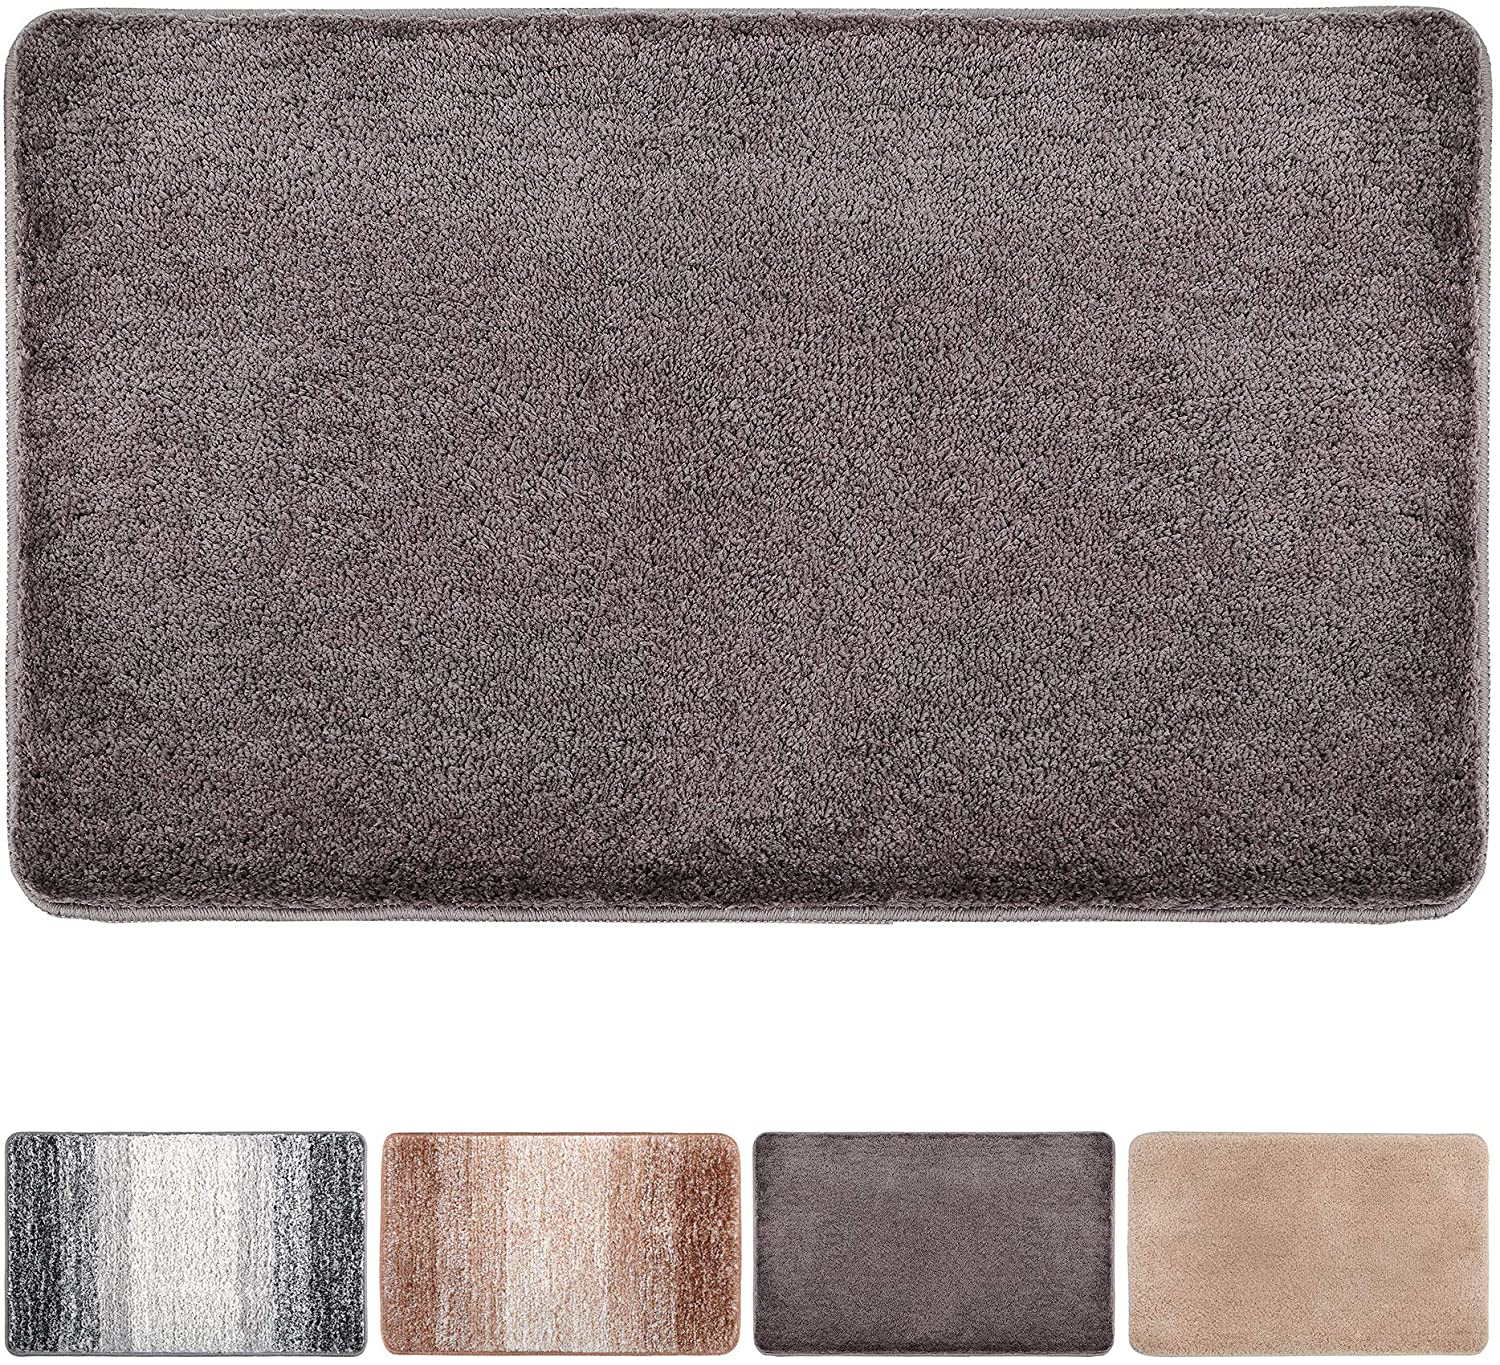 Indoor Doormat Front Door Mat Non Slip Rubber Backing Absorbent Mud and Snow Magic Inside Dirts Trapper Mats Entrance Rug Machine Washable (20